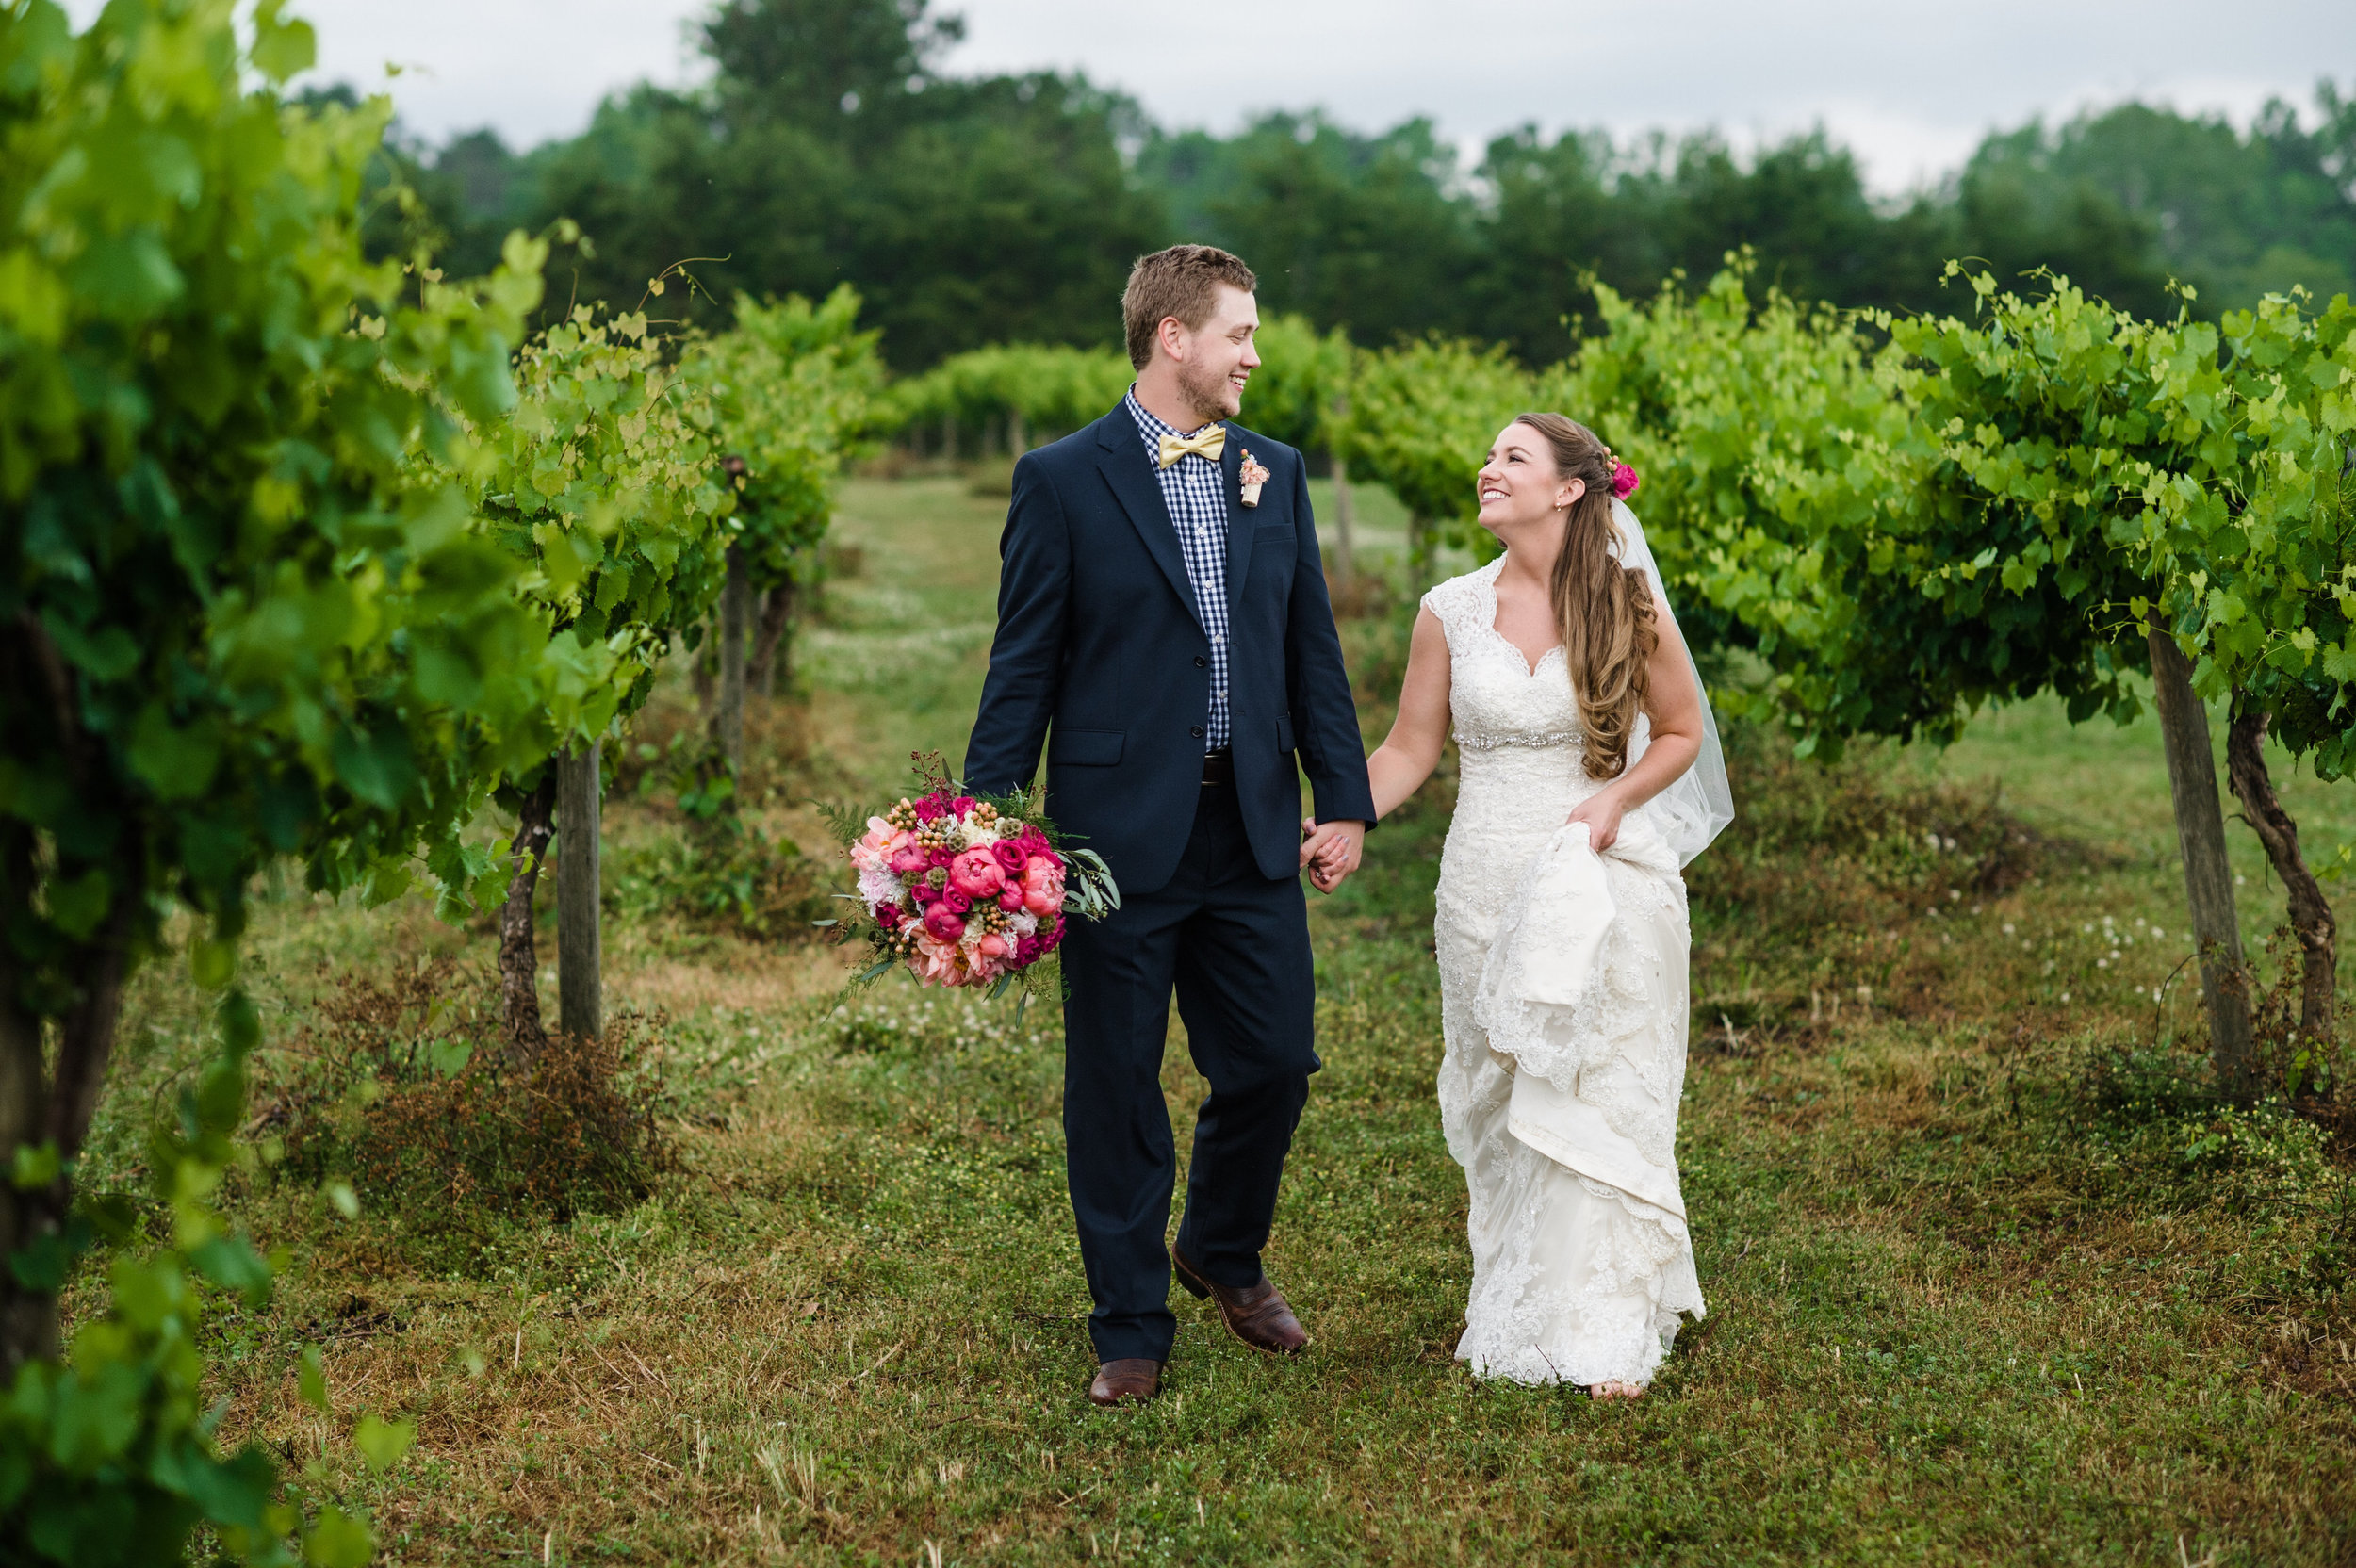 kristina & sean | Sweet julep photography | handley breaux designs | birmingham wedding